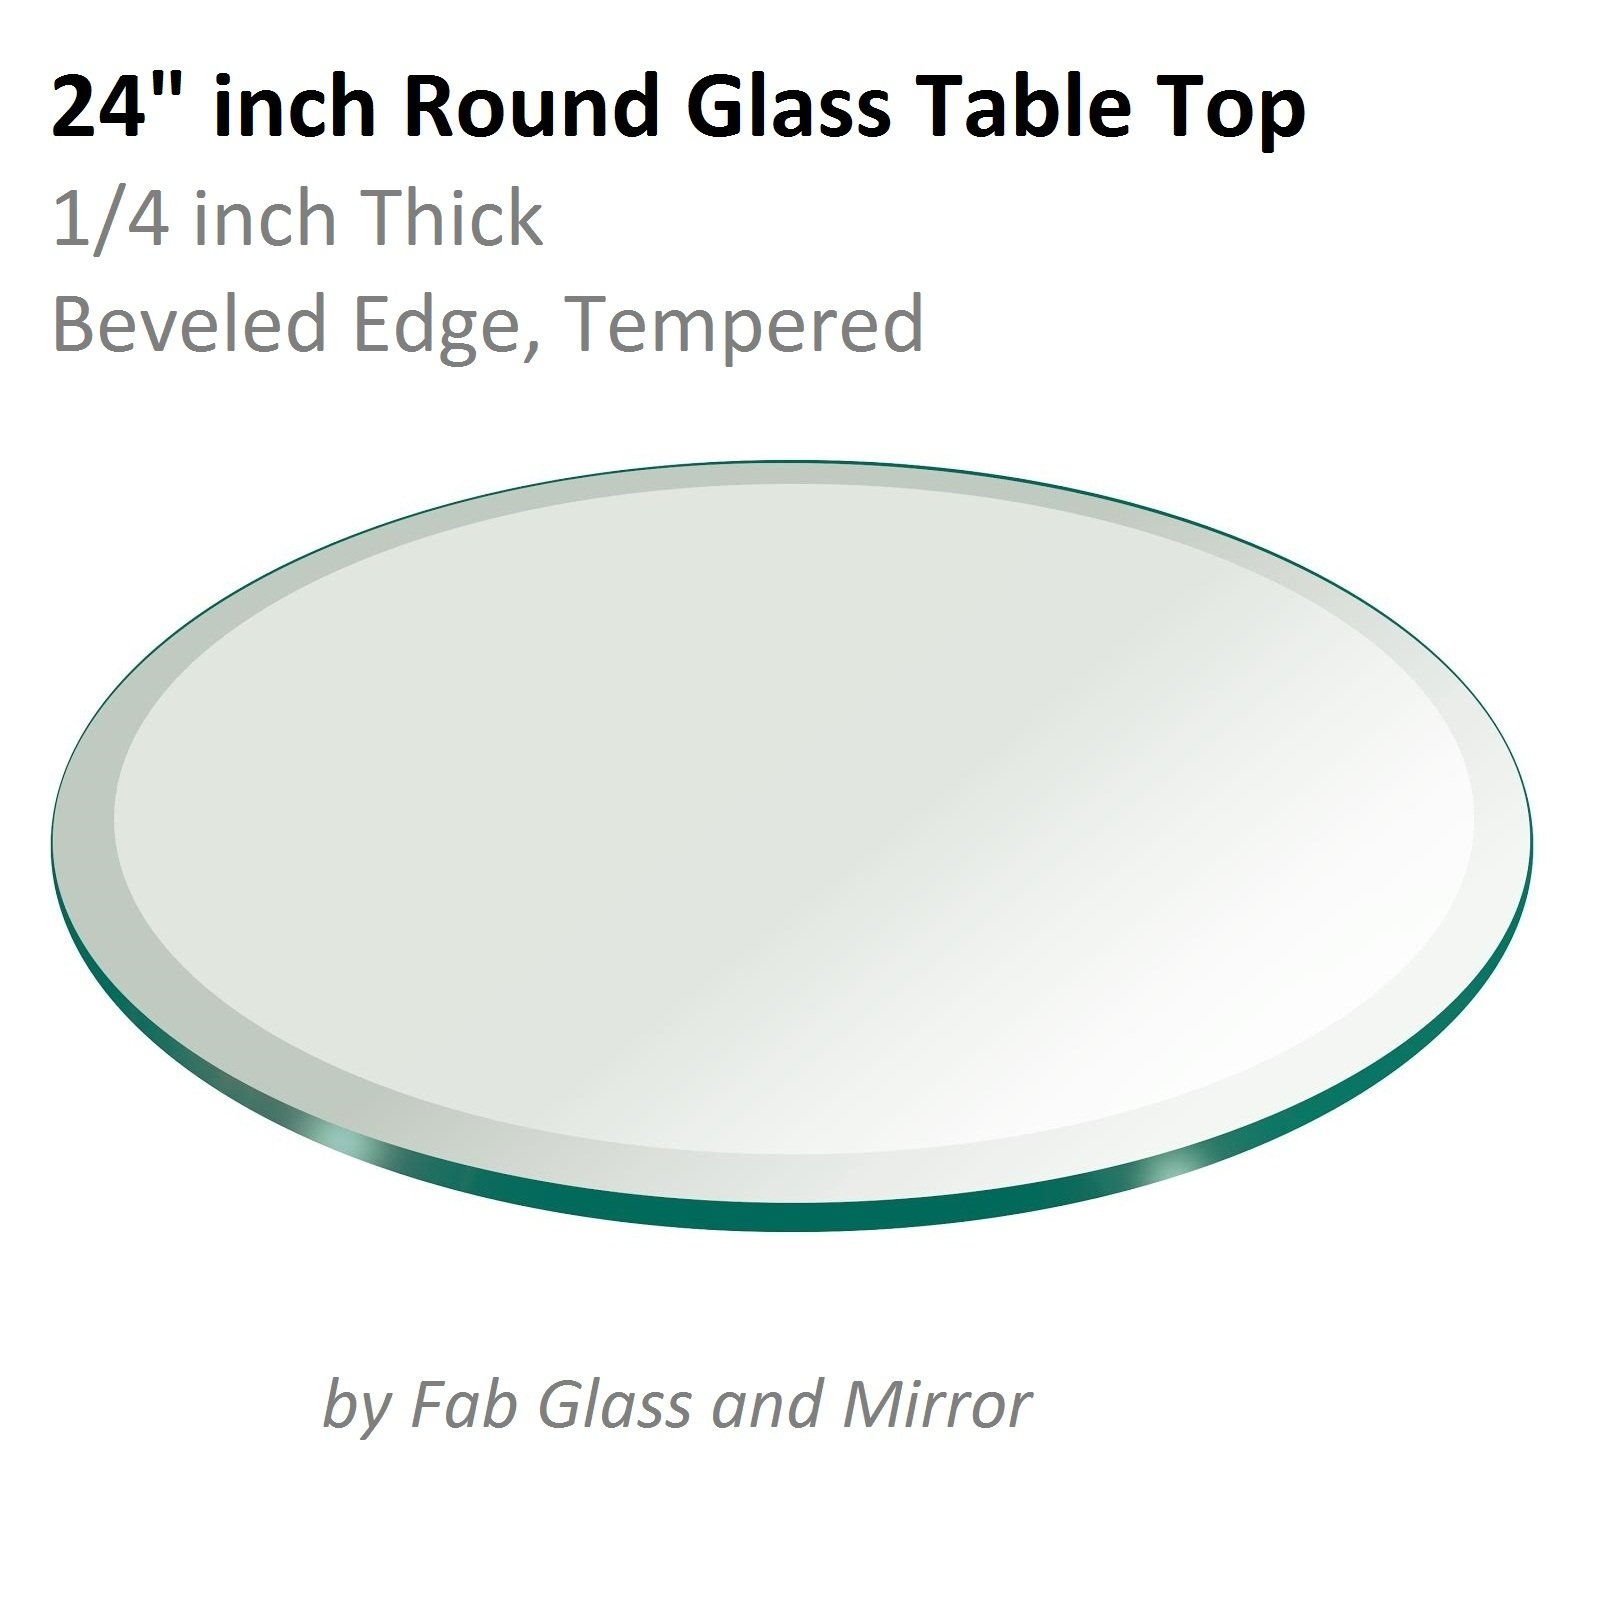 Fab Glass and Mirror 24'' Inch Round Glass Table Top 1/4'' Thick Tempered Beveled Edge